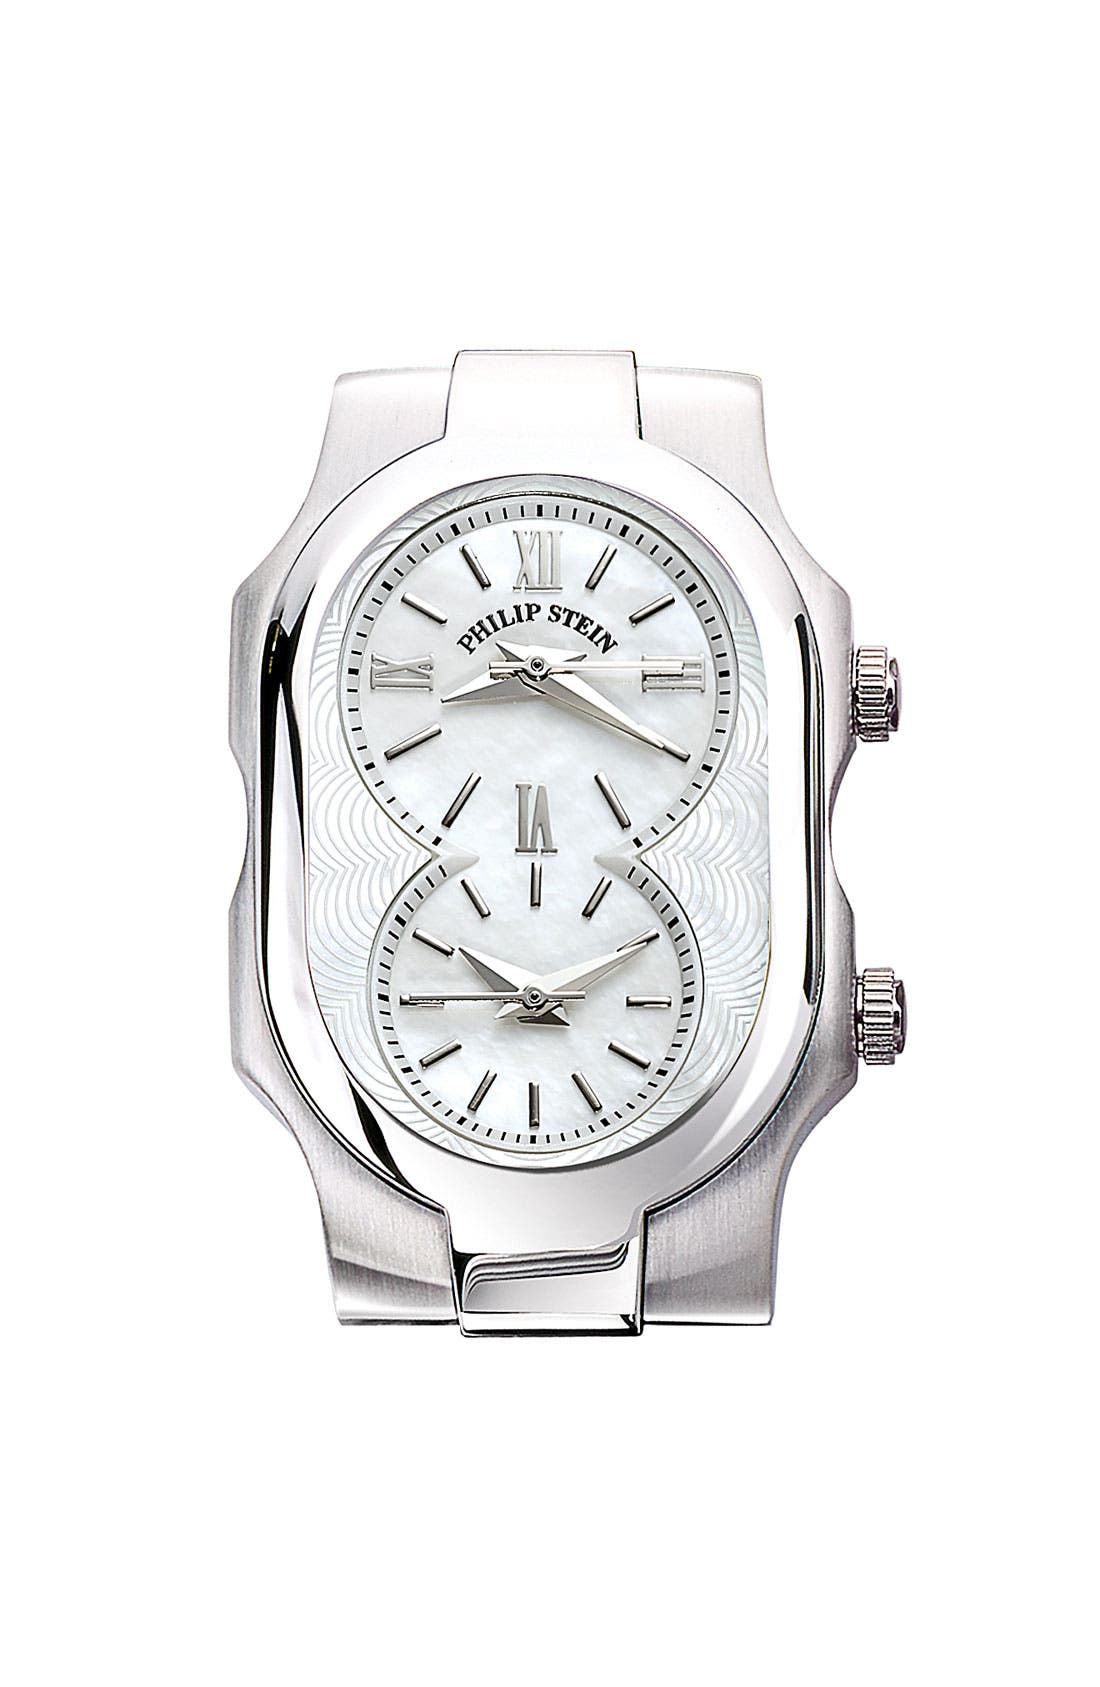 Main Image - Philip Stein® 'Signature' Small Watch Case